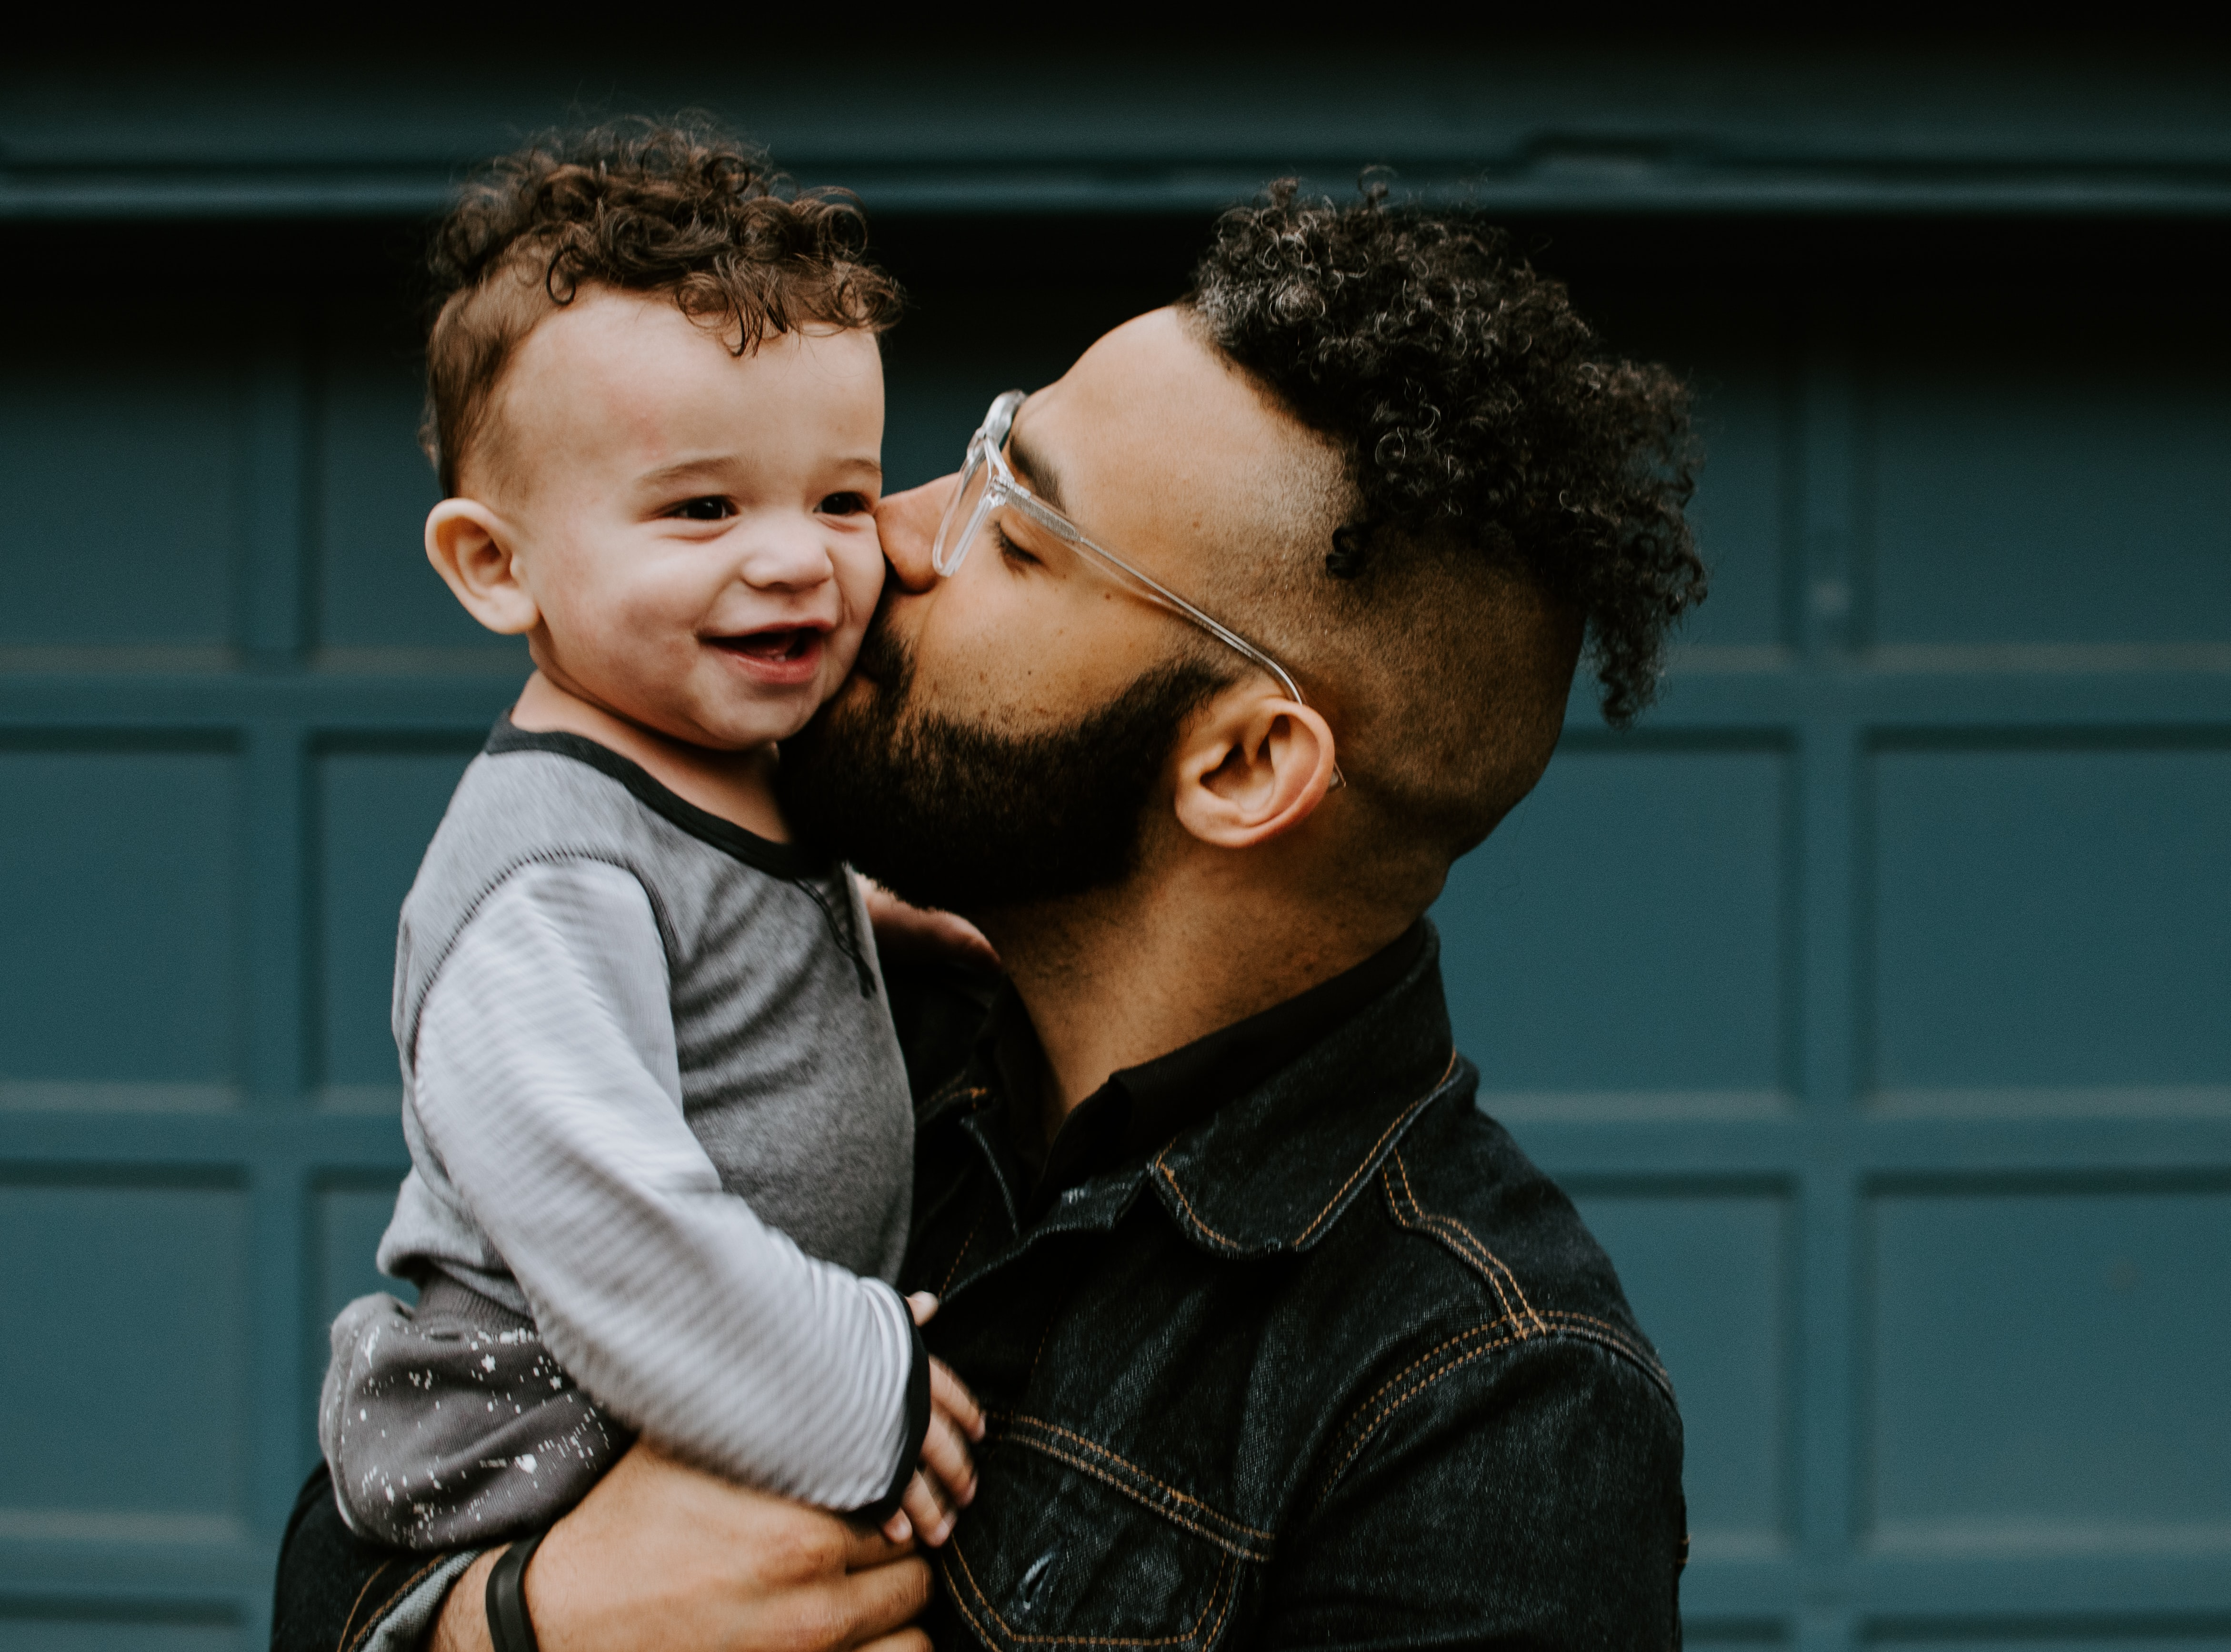 Adoption discussions tend to leave out an integral part: the birth fathers. This article hopes to start a conversation about birth fathers.